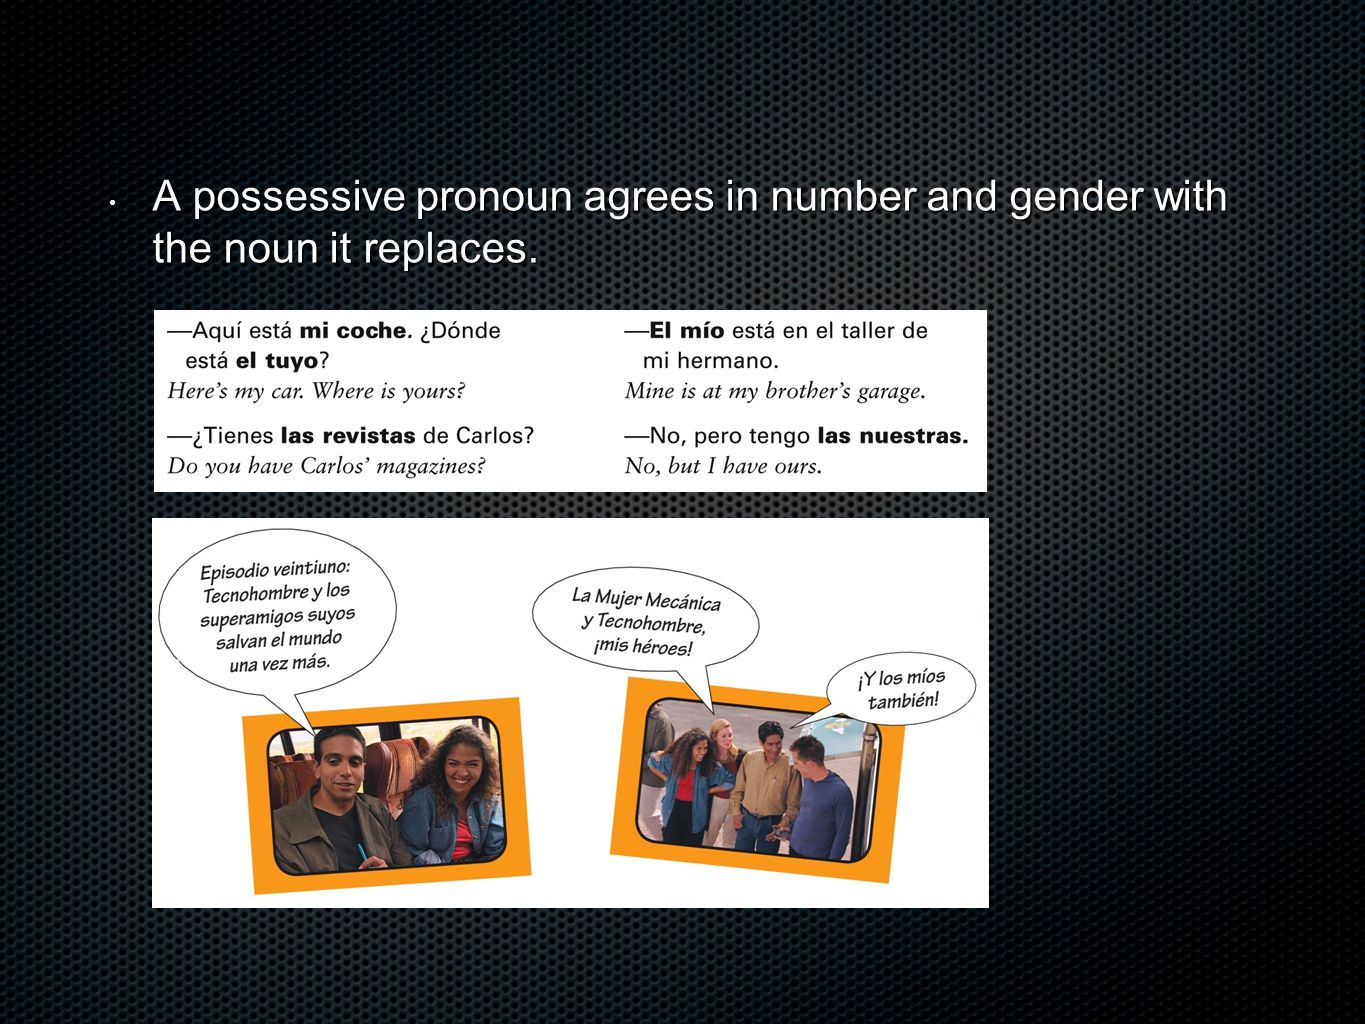 A possessive pronoun agrees in number and gender with the noun it replaces. A possessive pronoun agrees in number and gender with the noun it replaces